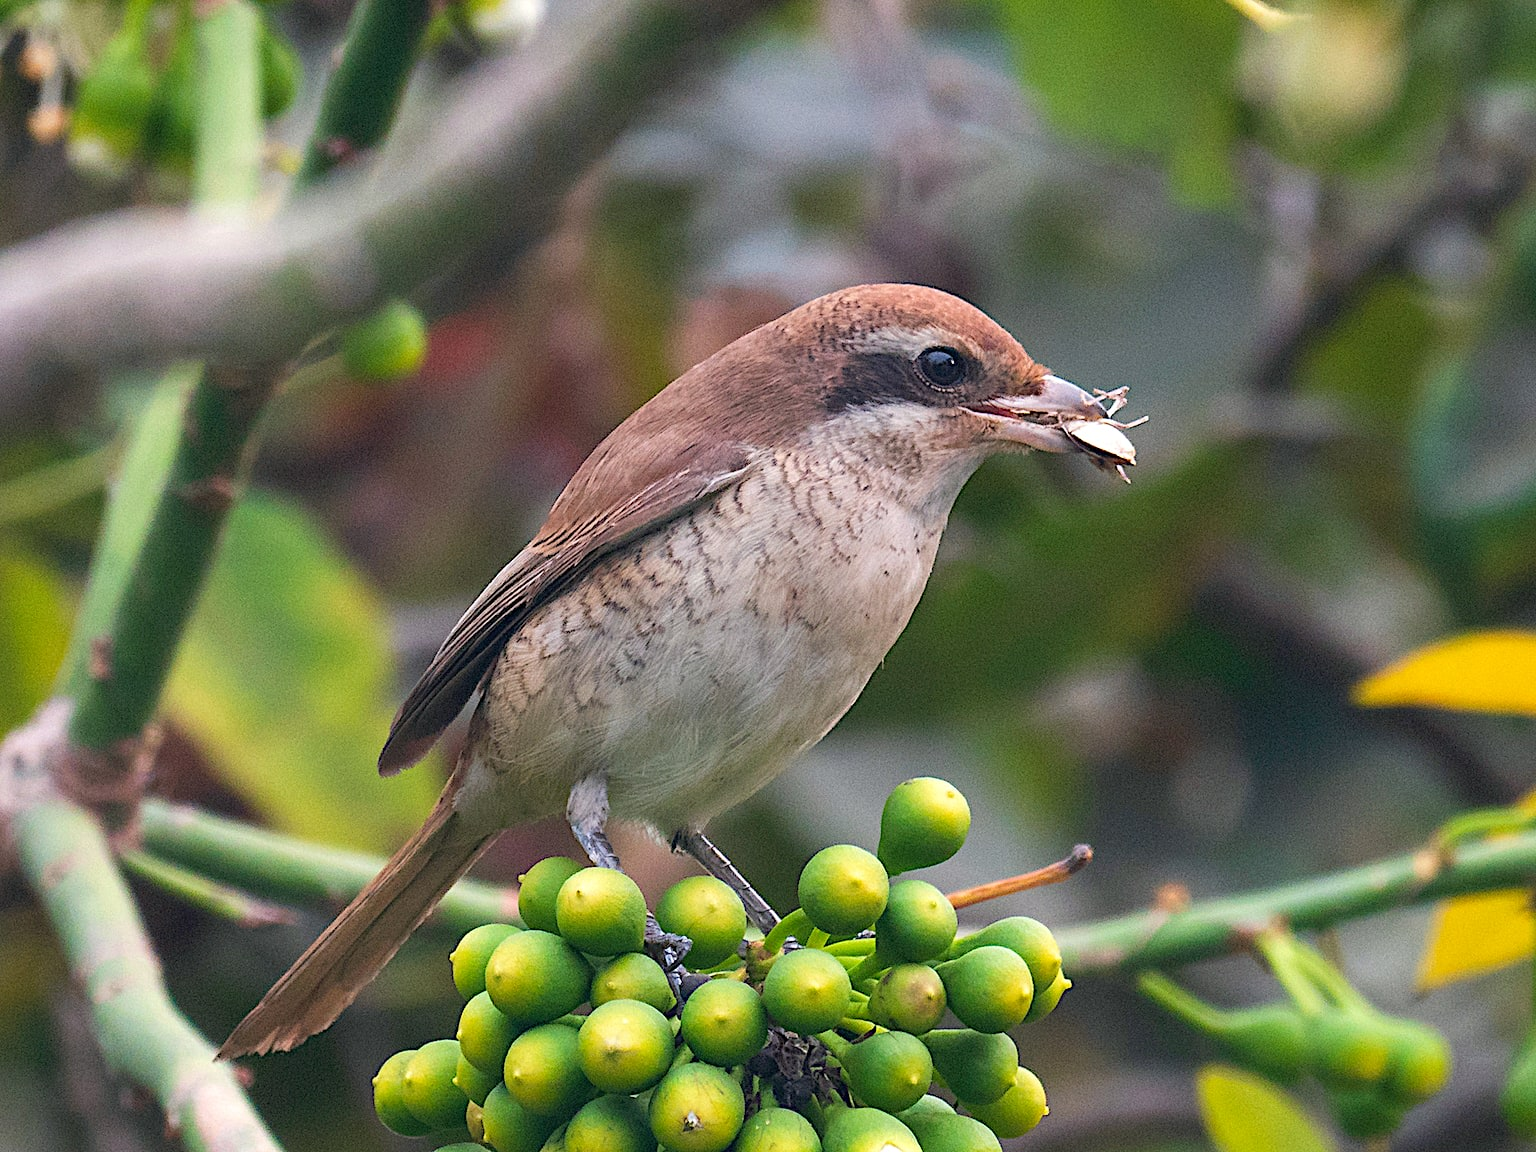 The brown shrike mostly feeds on insects, but occasionally it also hunts small birds and lizards.  Photo: Debasis Das/Shutterstock